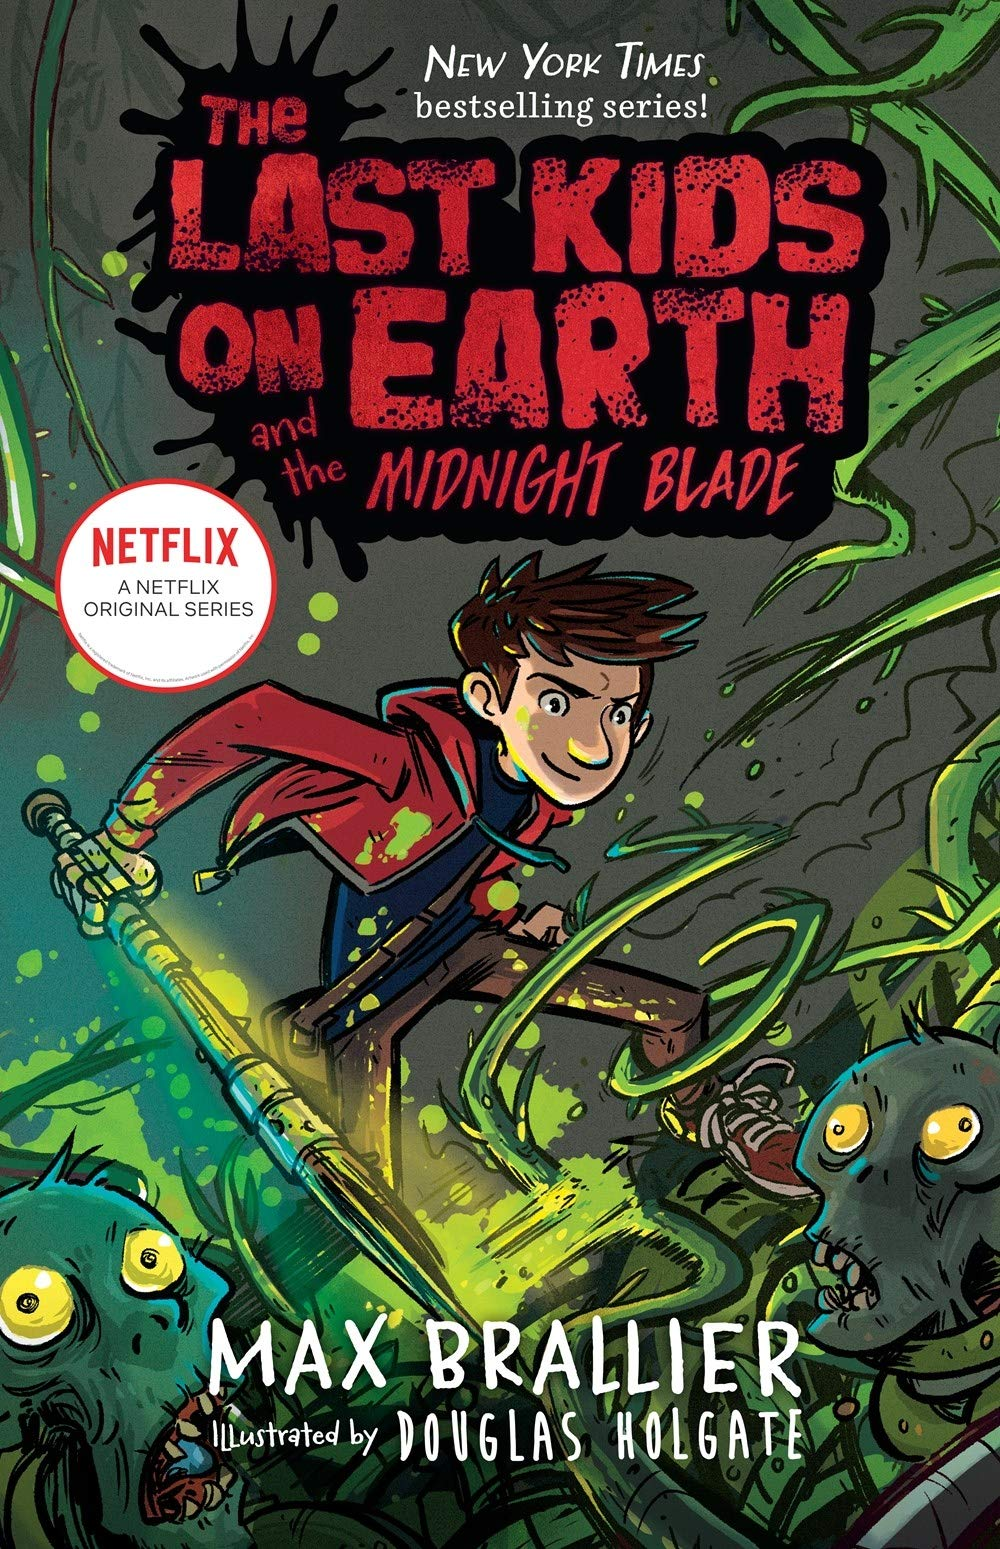 The Last Kids on Earth and the Midnight Blade: Max Brallier